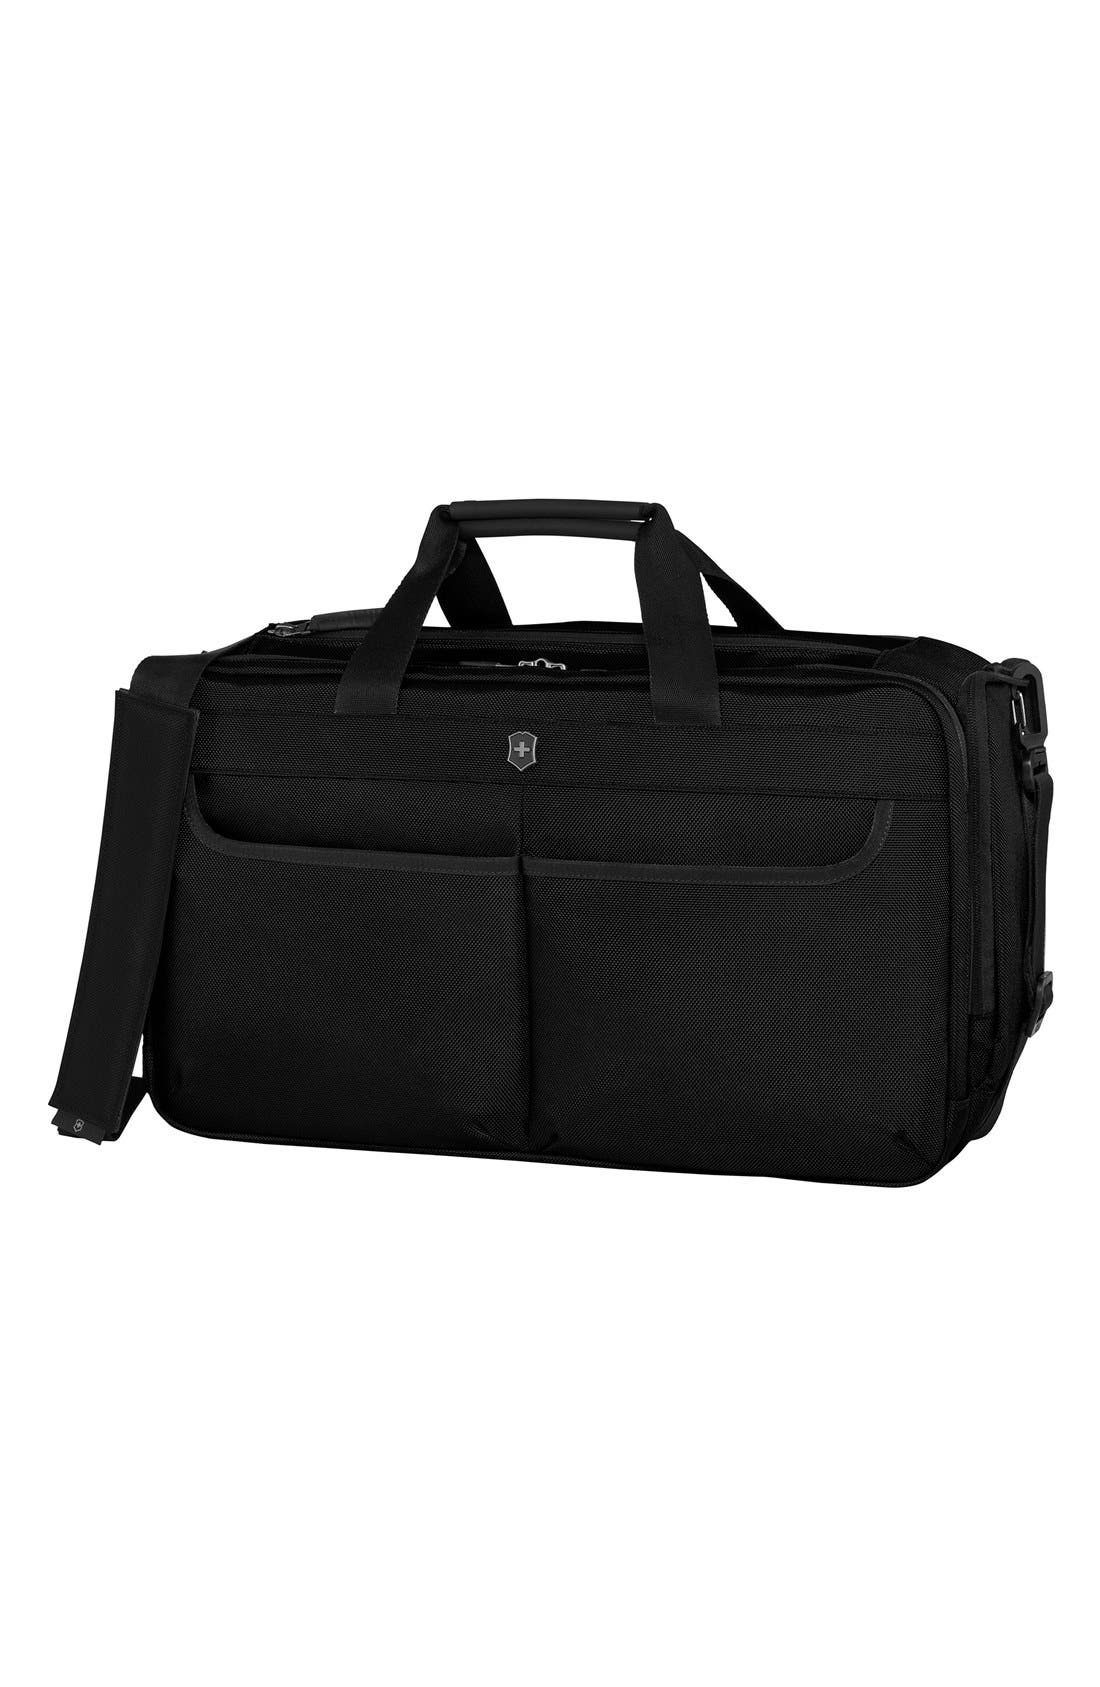 Victorinox Swiss Army® 'WT 5.0' Duffel Bag